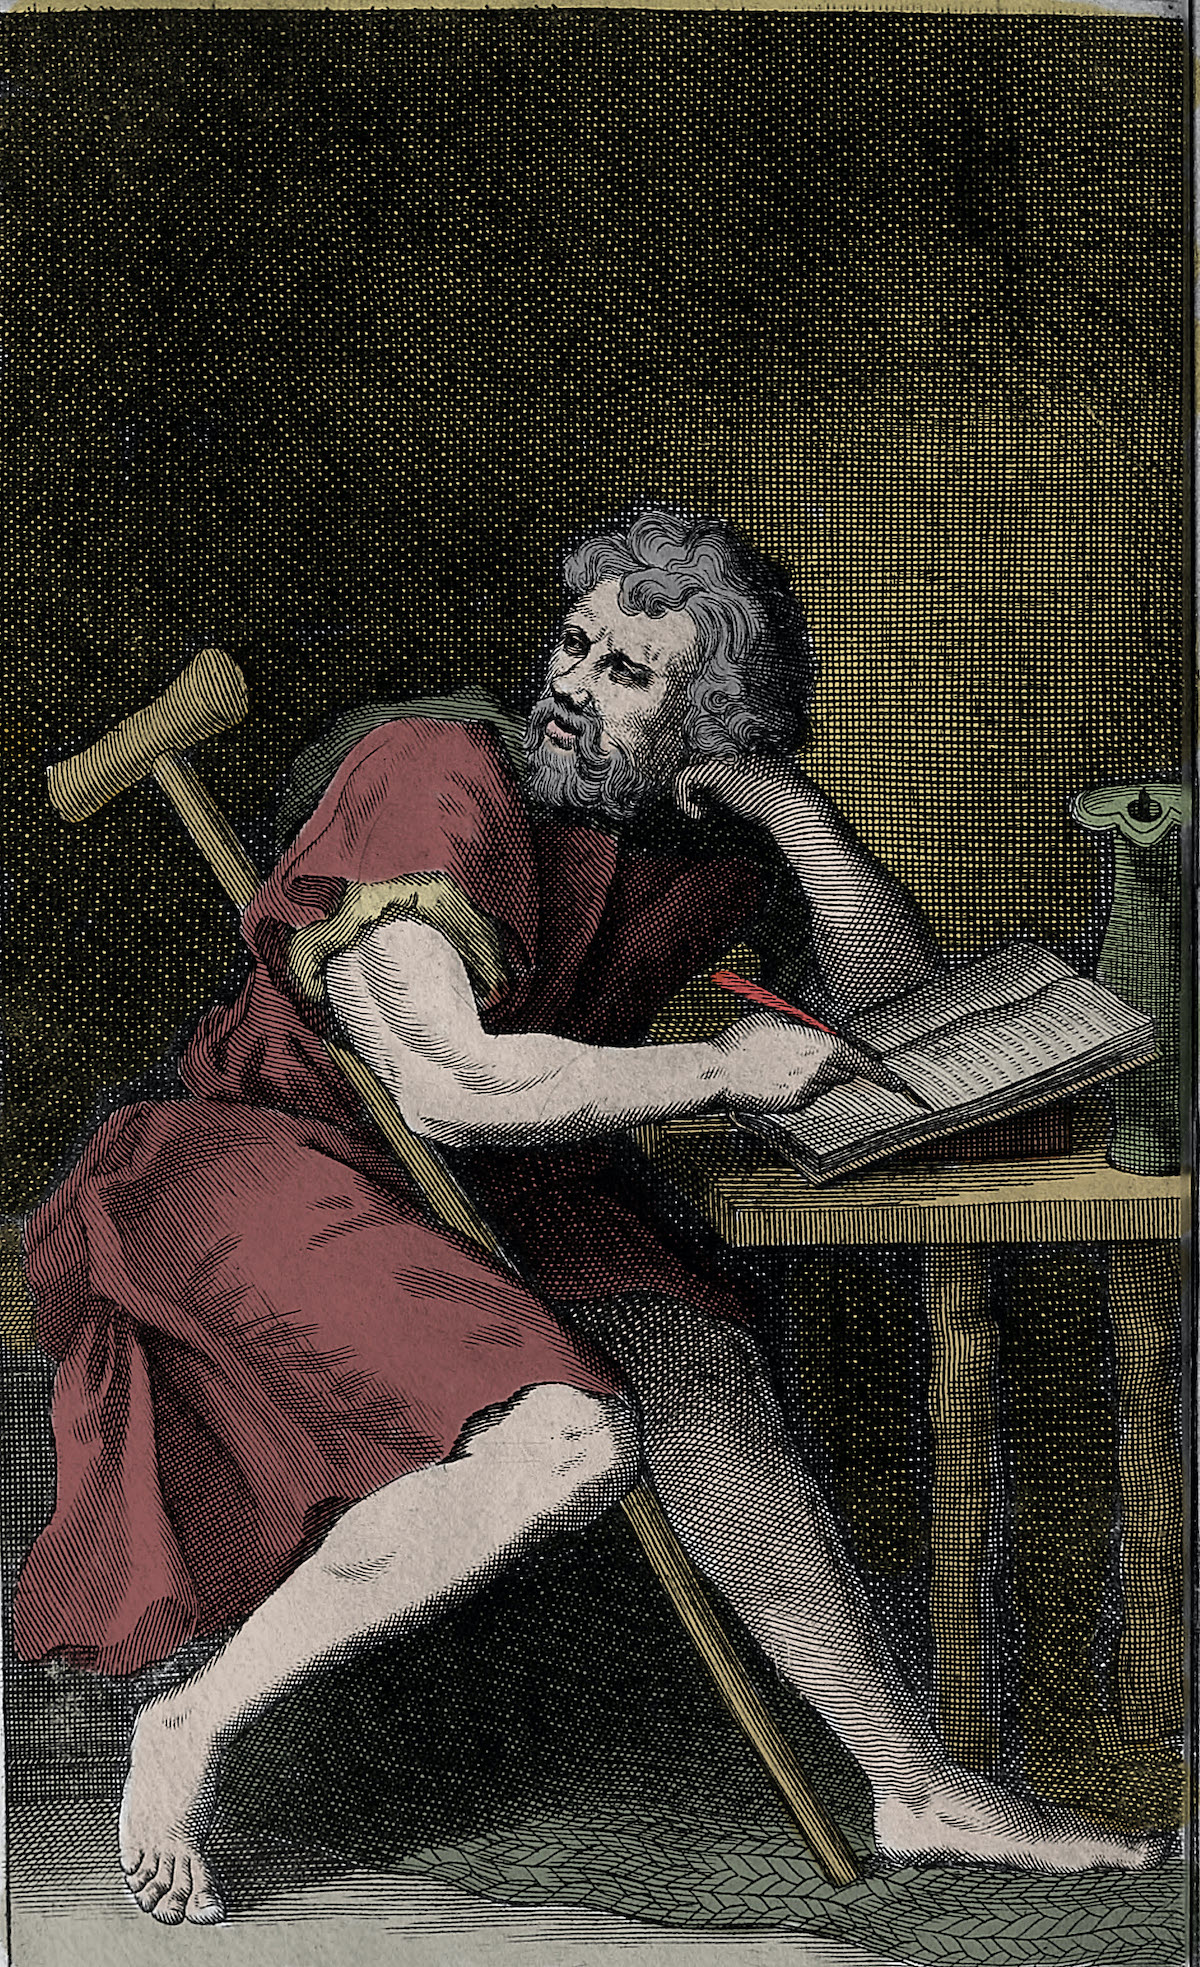 Epictetus the Greek Stoic philosopher. Photo: AFP / ©Costa/leemage